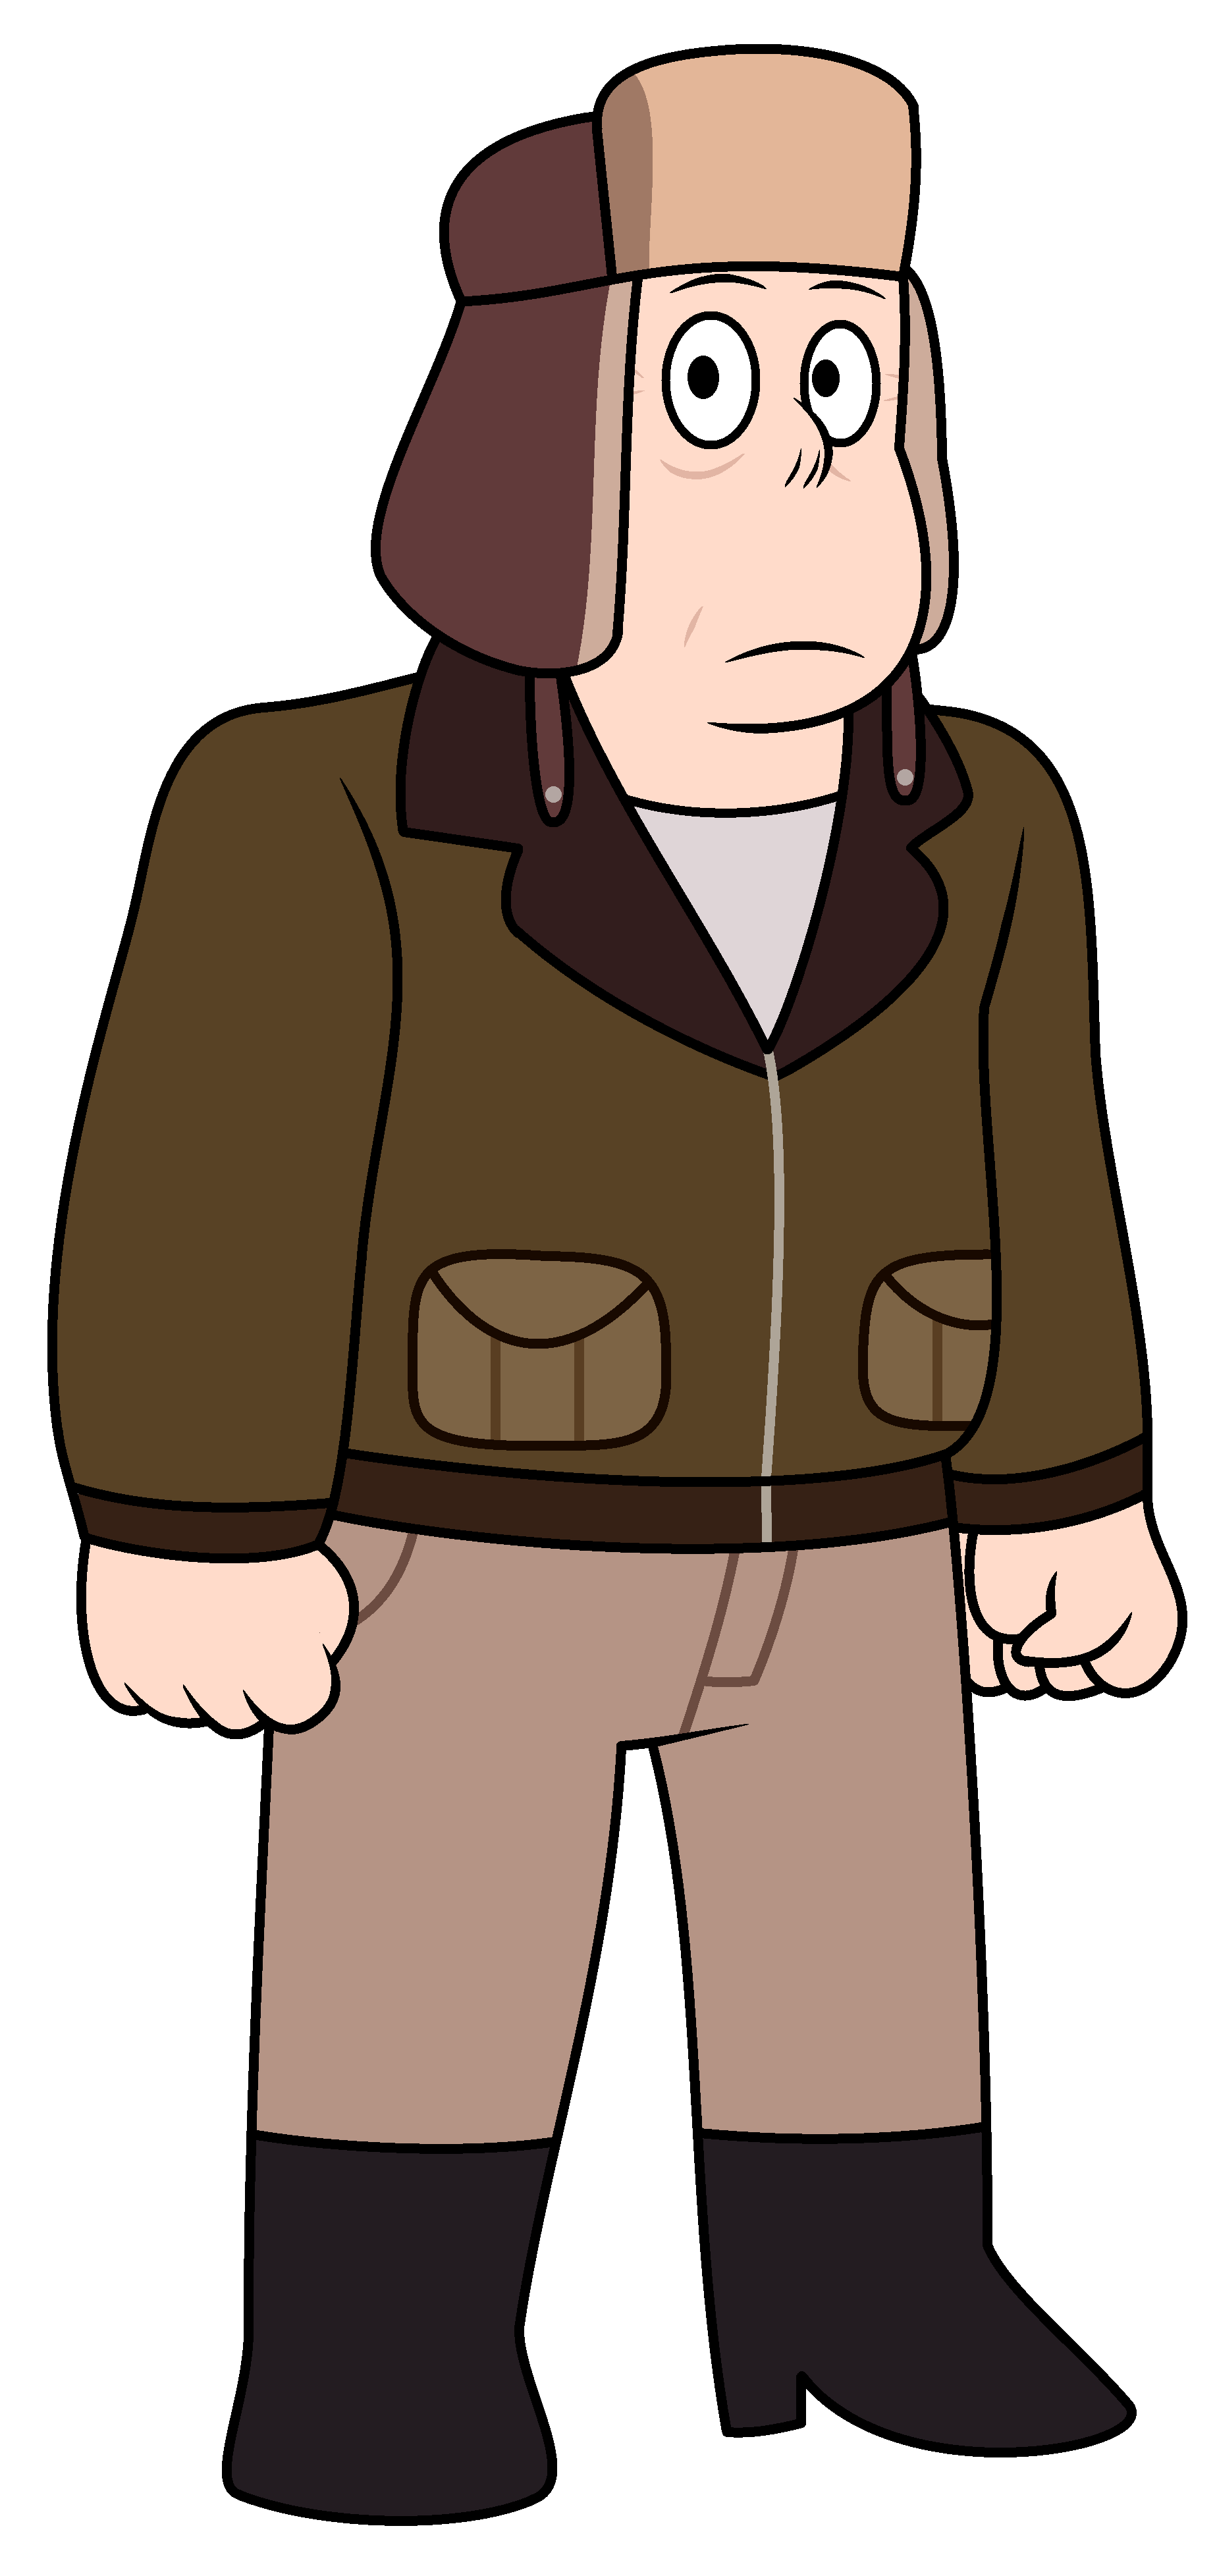 Andy demayo steven universe. Waitress clipart handsome